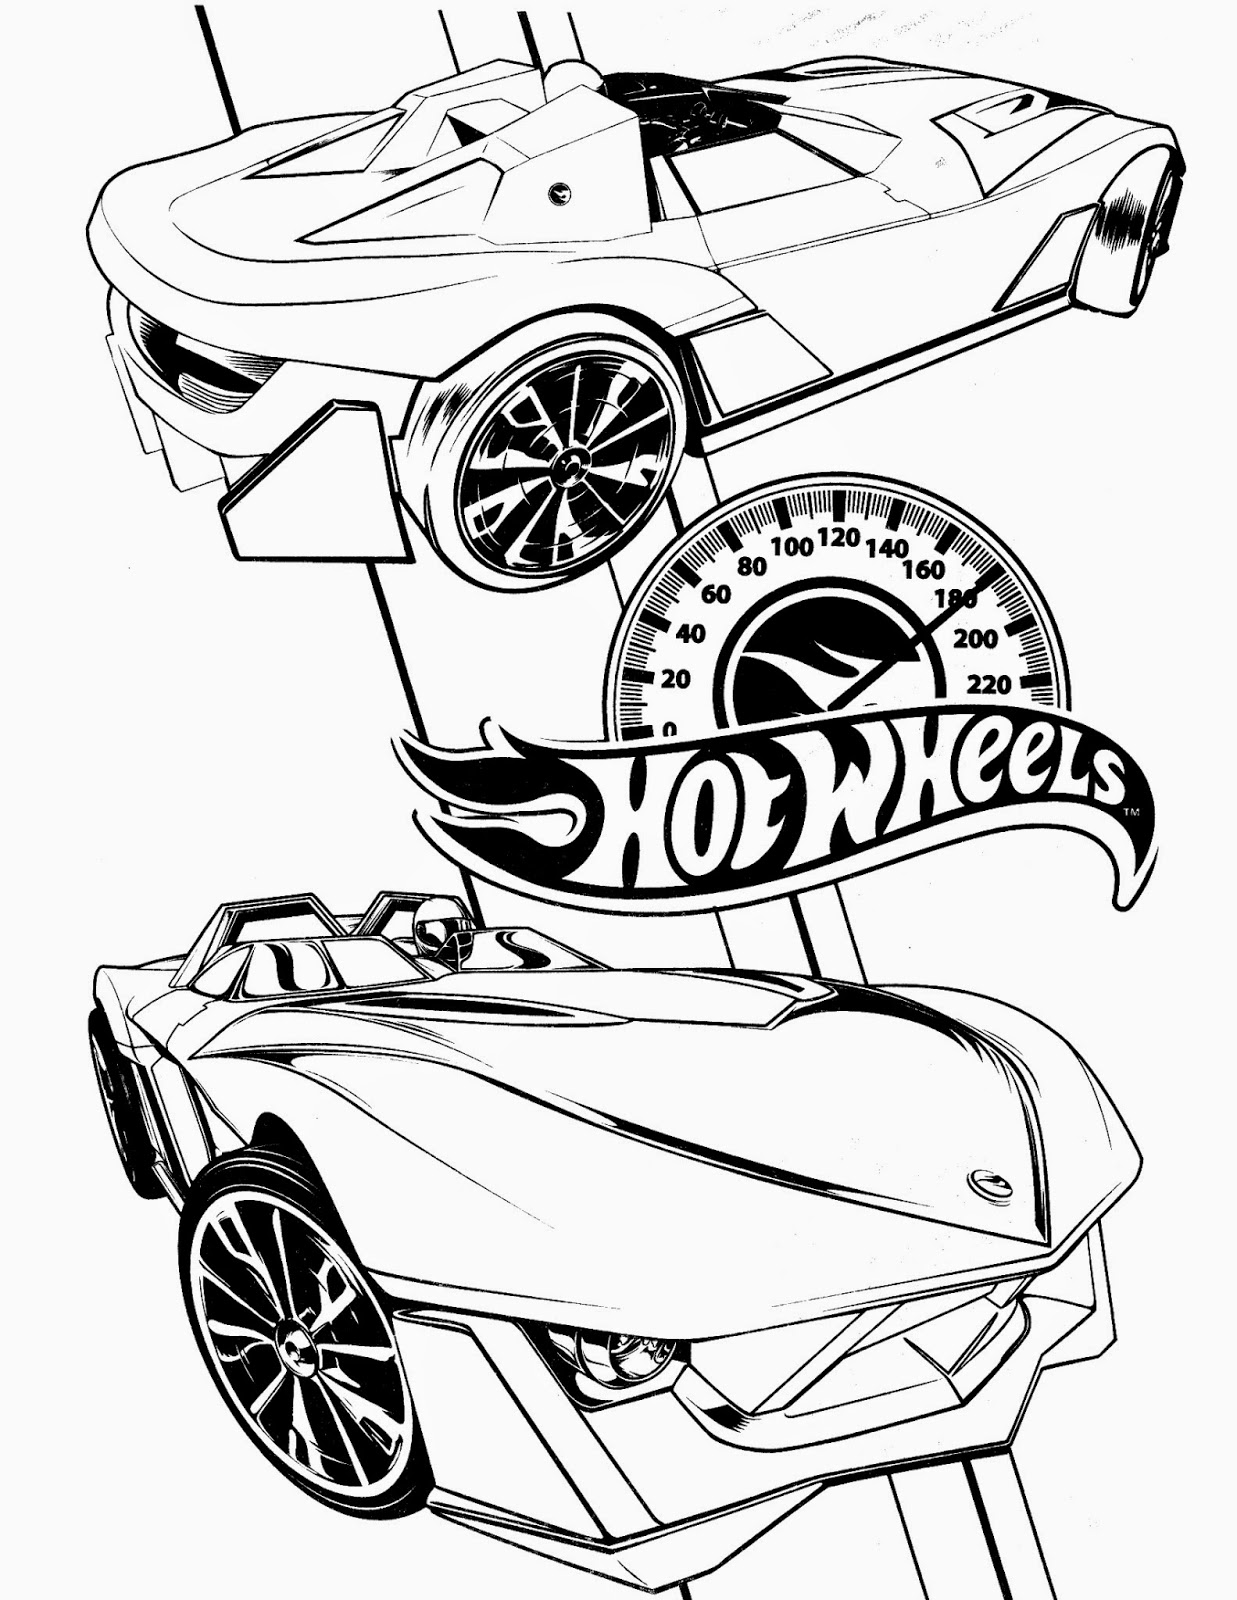 Hotwheels colouring pages